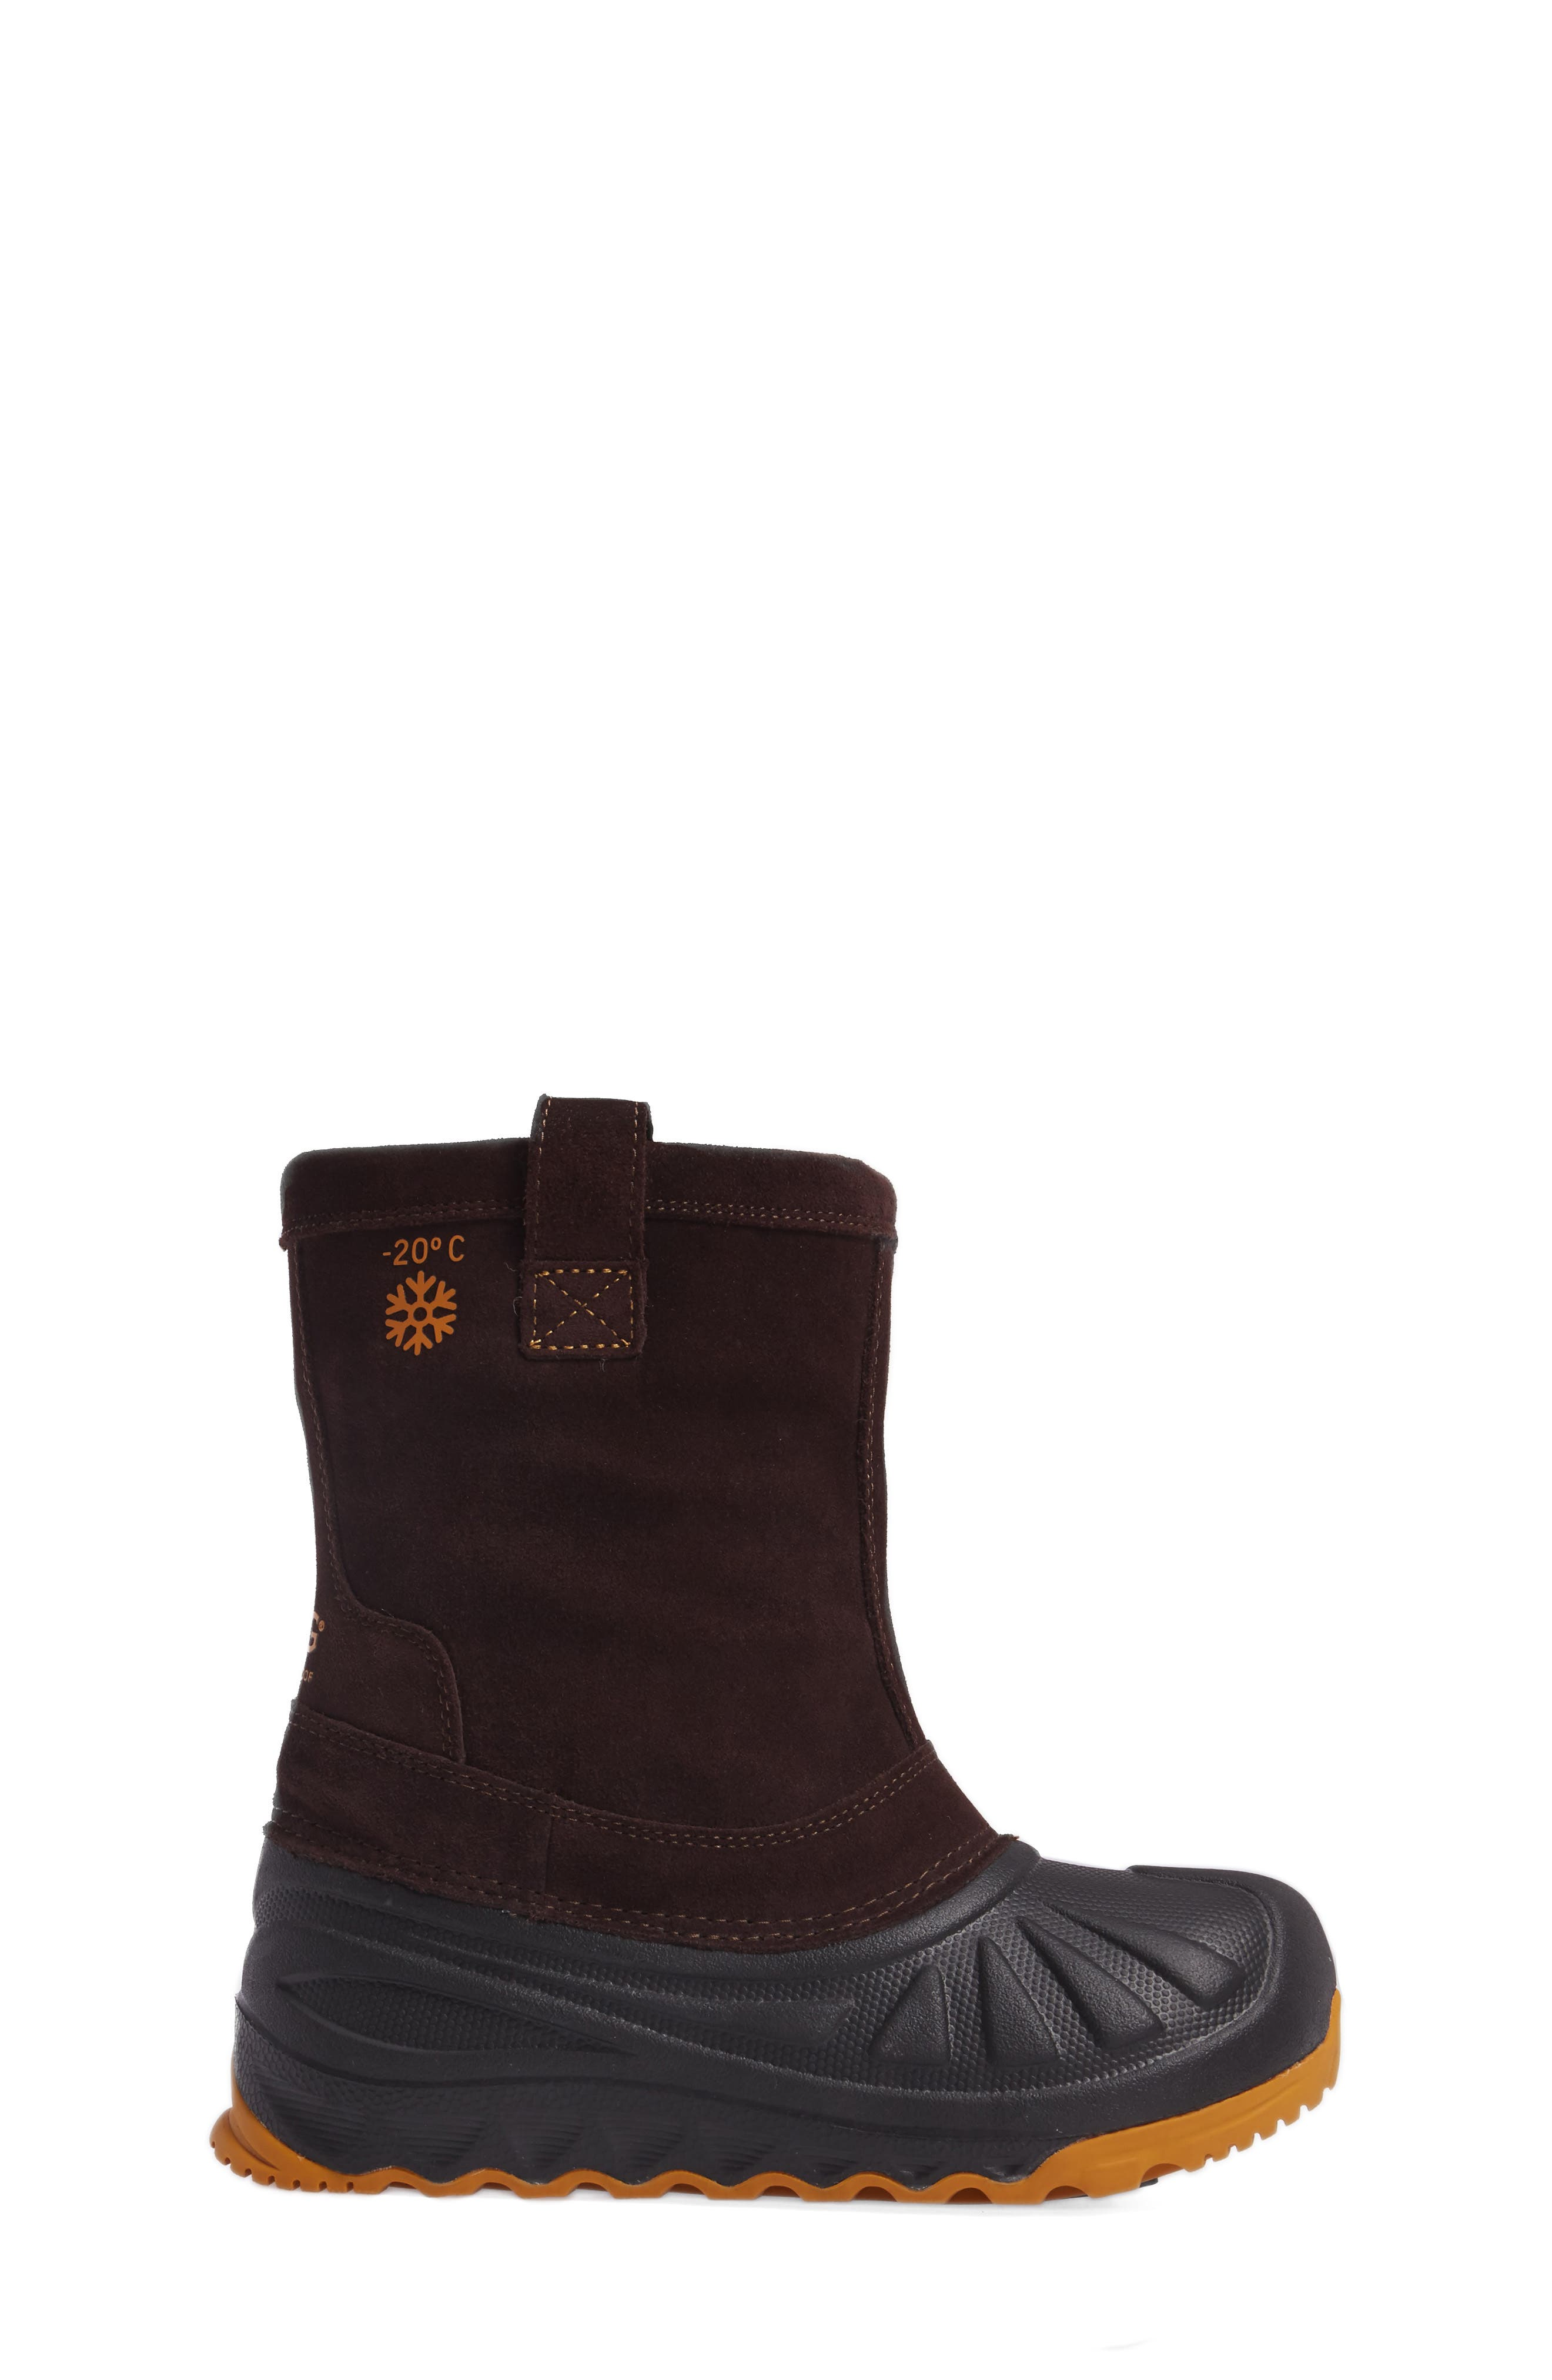 Evertt Waterproof Thinsulate<sup>™</sup> Insulated Snow Boot,                             Alternate thumbnail 5, color,